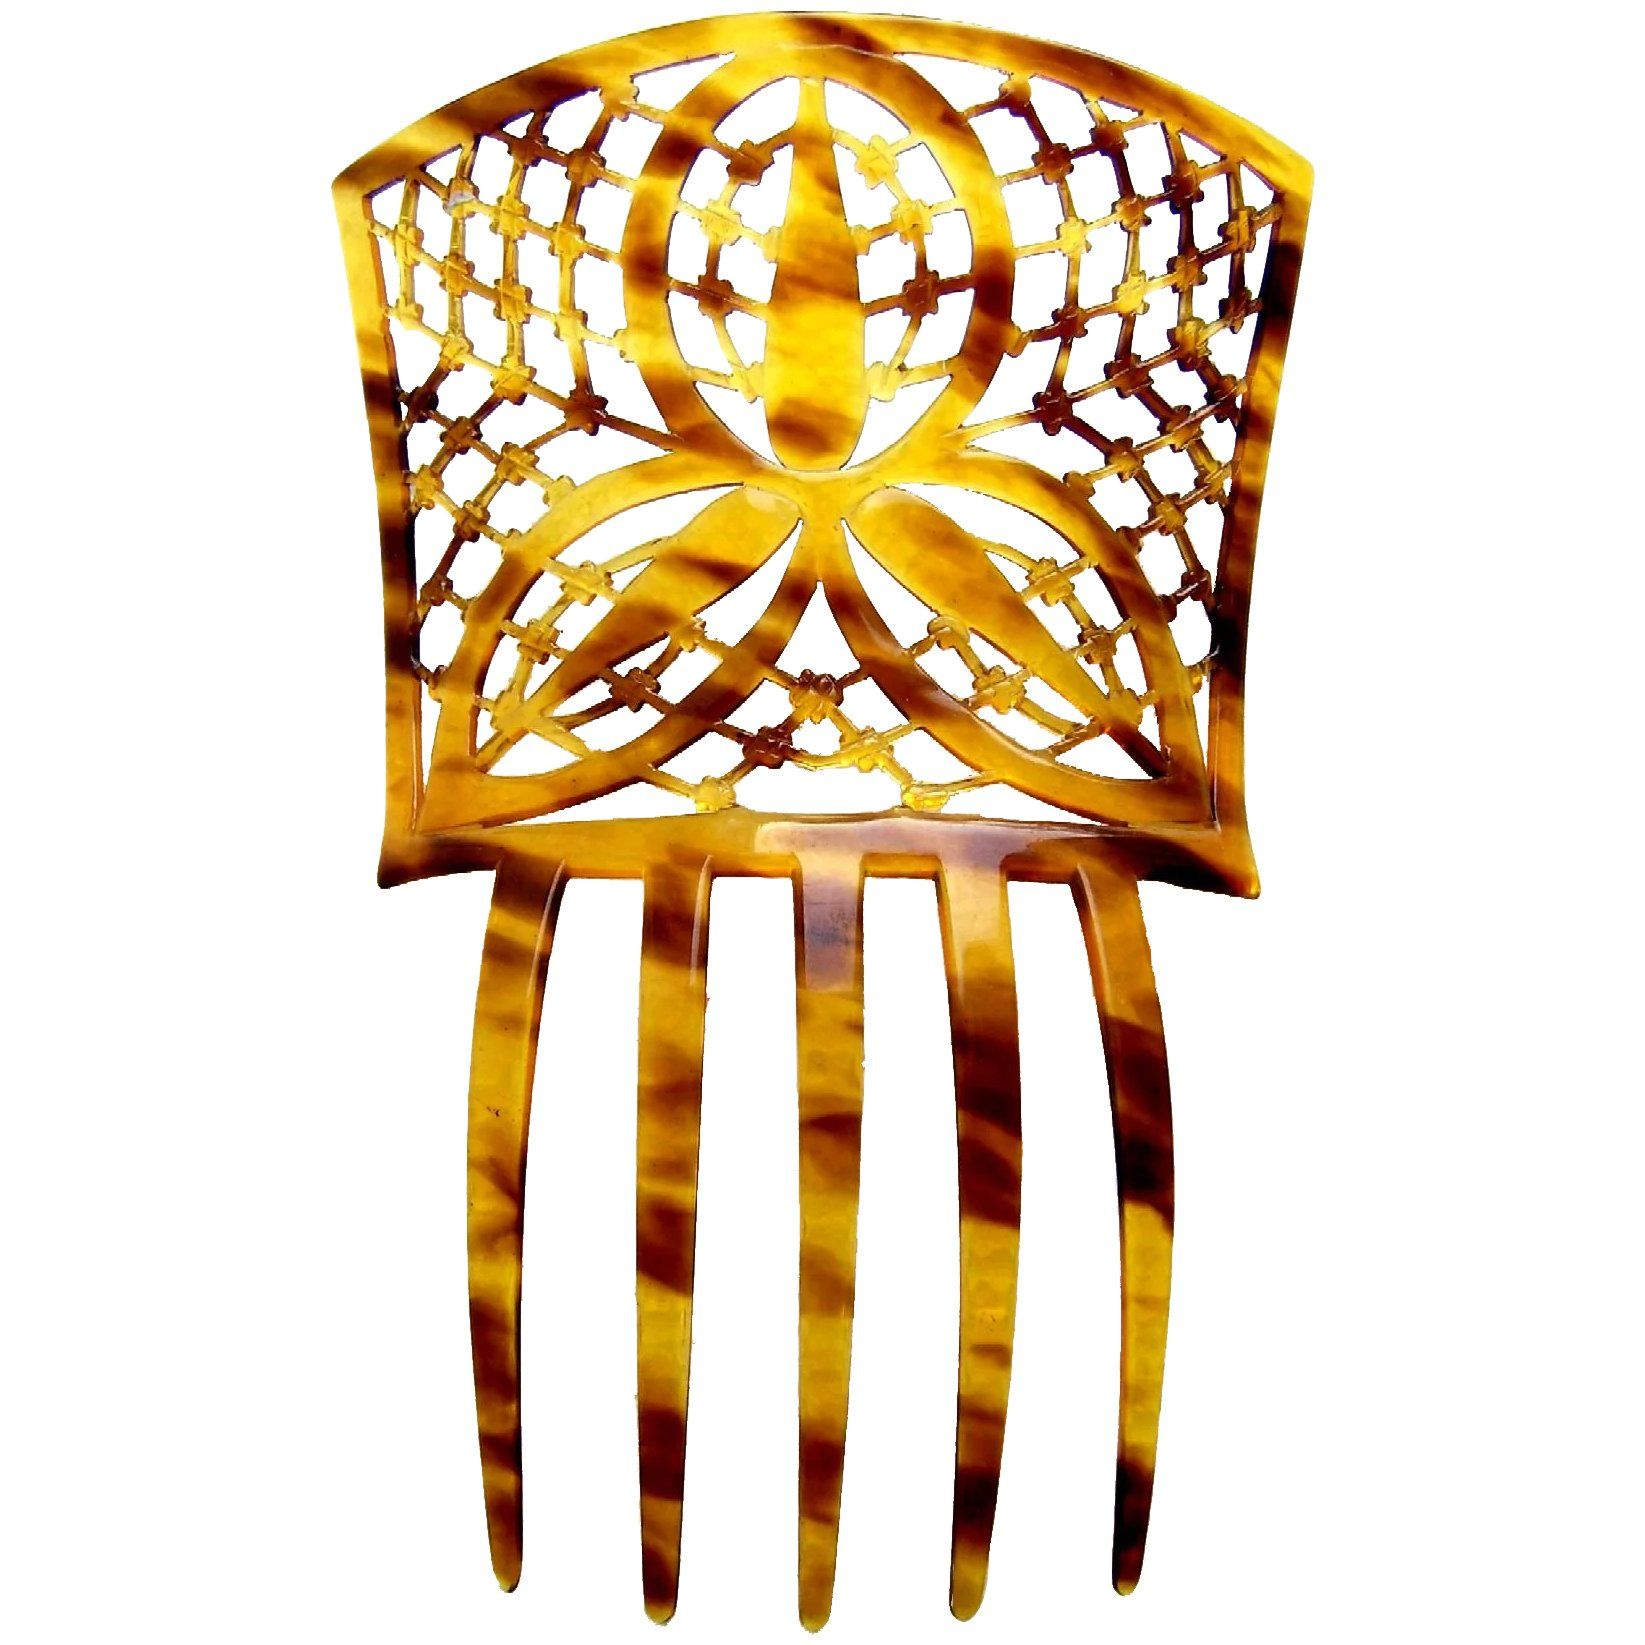 A Handsome Spanish Style Hair Comb In Celluloid Faux Tortoiseshell Condition Good Vintage Condition With Expected Tortoise Shell Hair Hair Comb Art Deco Hair